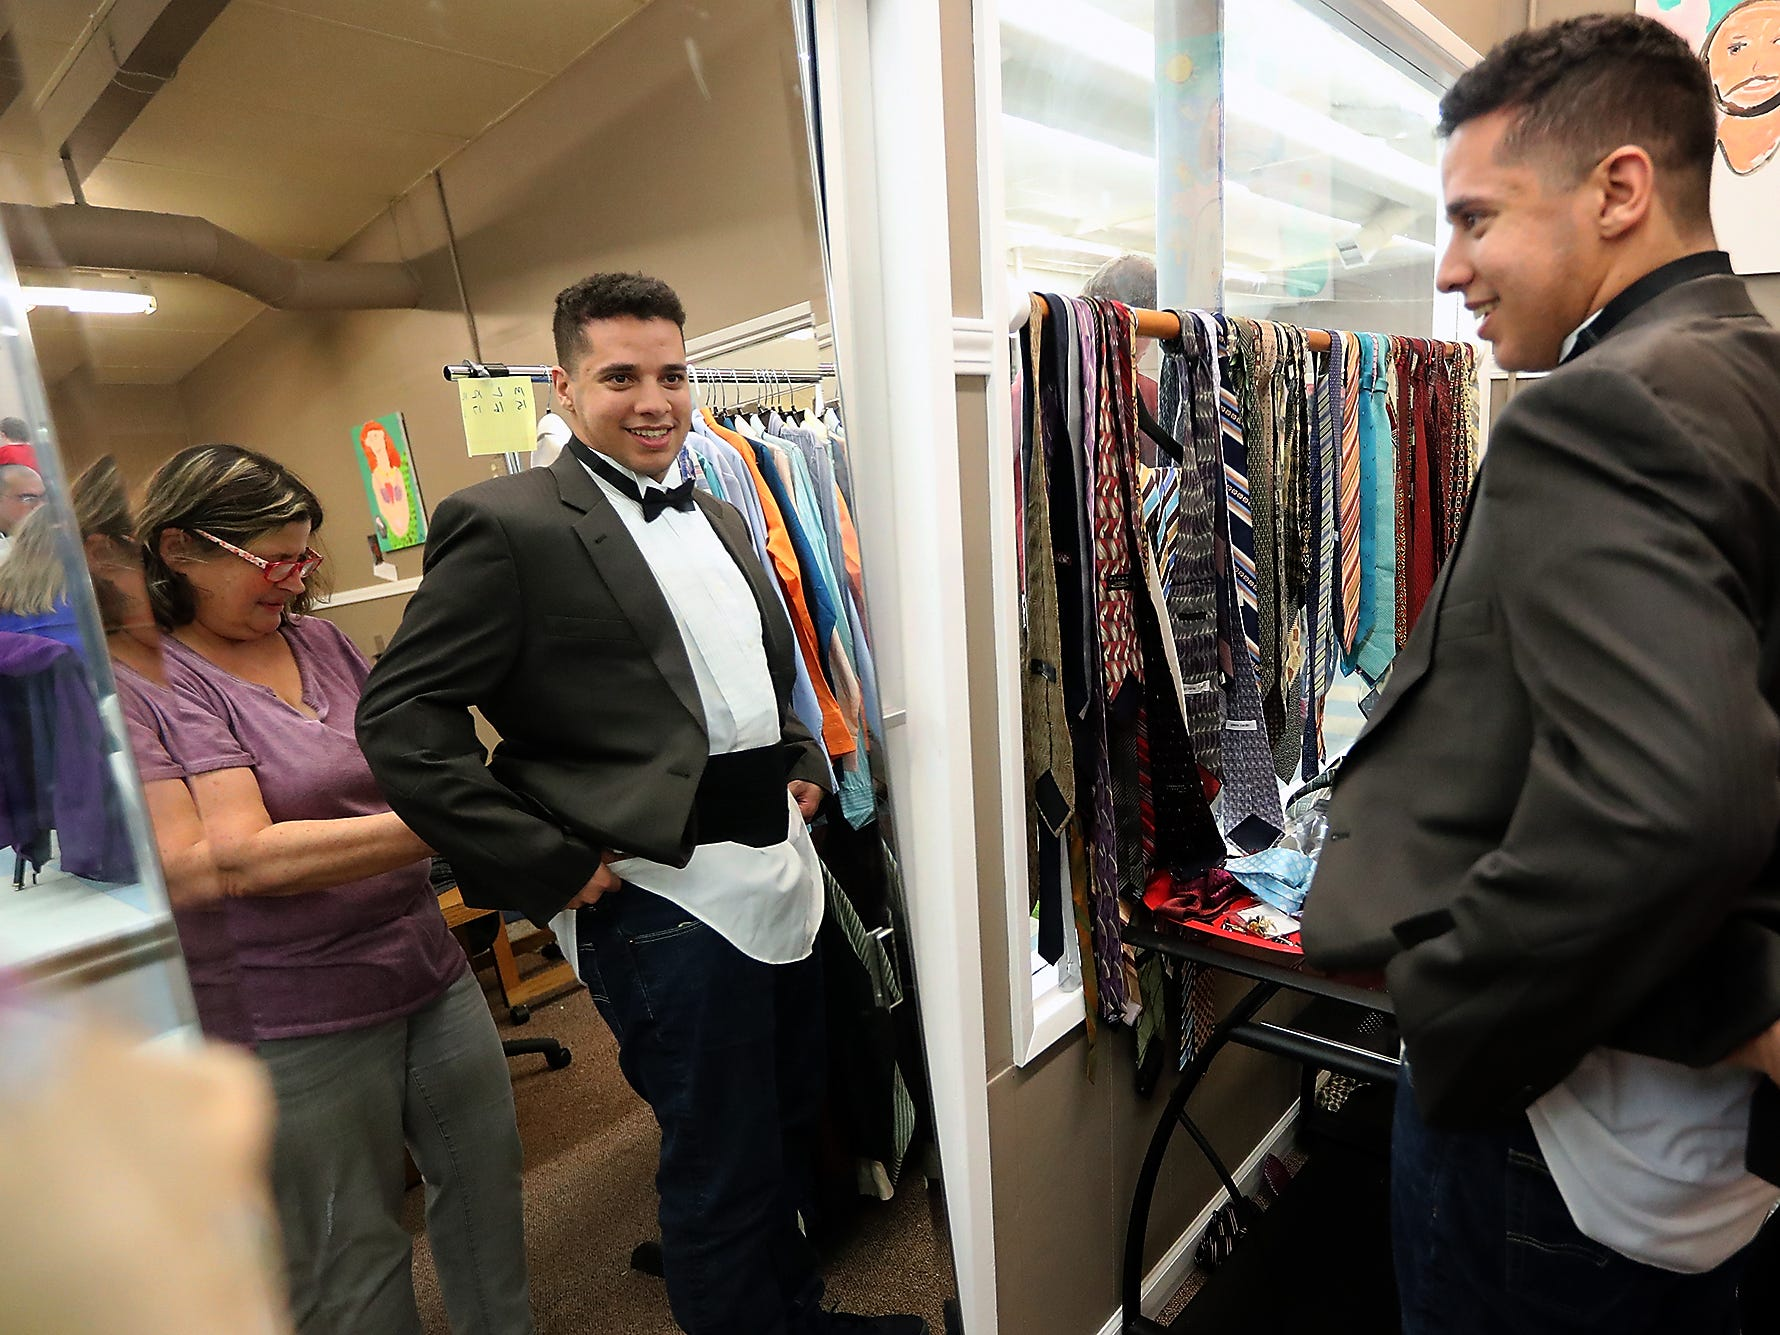 Volunteer Jeanie Johns (left) helps Robin Miller try on a cummerbund to wear to the upcoming Night To Shine Prom,  at the Arc of the Peninsulas in Bremerton on Friday. Night To Shine attendees were able to visit the dress shop at the Arc of the Peninsulas and pick out donated suits, dresses and accessories to wear to the upcoming formal event. Night to Shine takes place on Friday, Feb. 8 at the Kitsap Sun Pavilion.